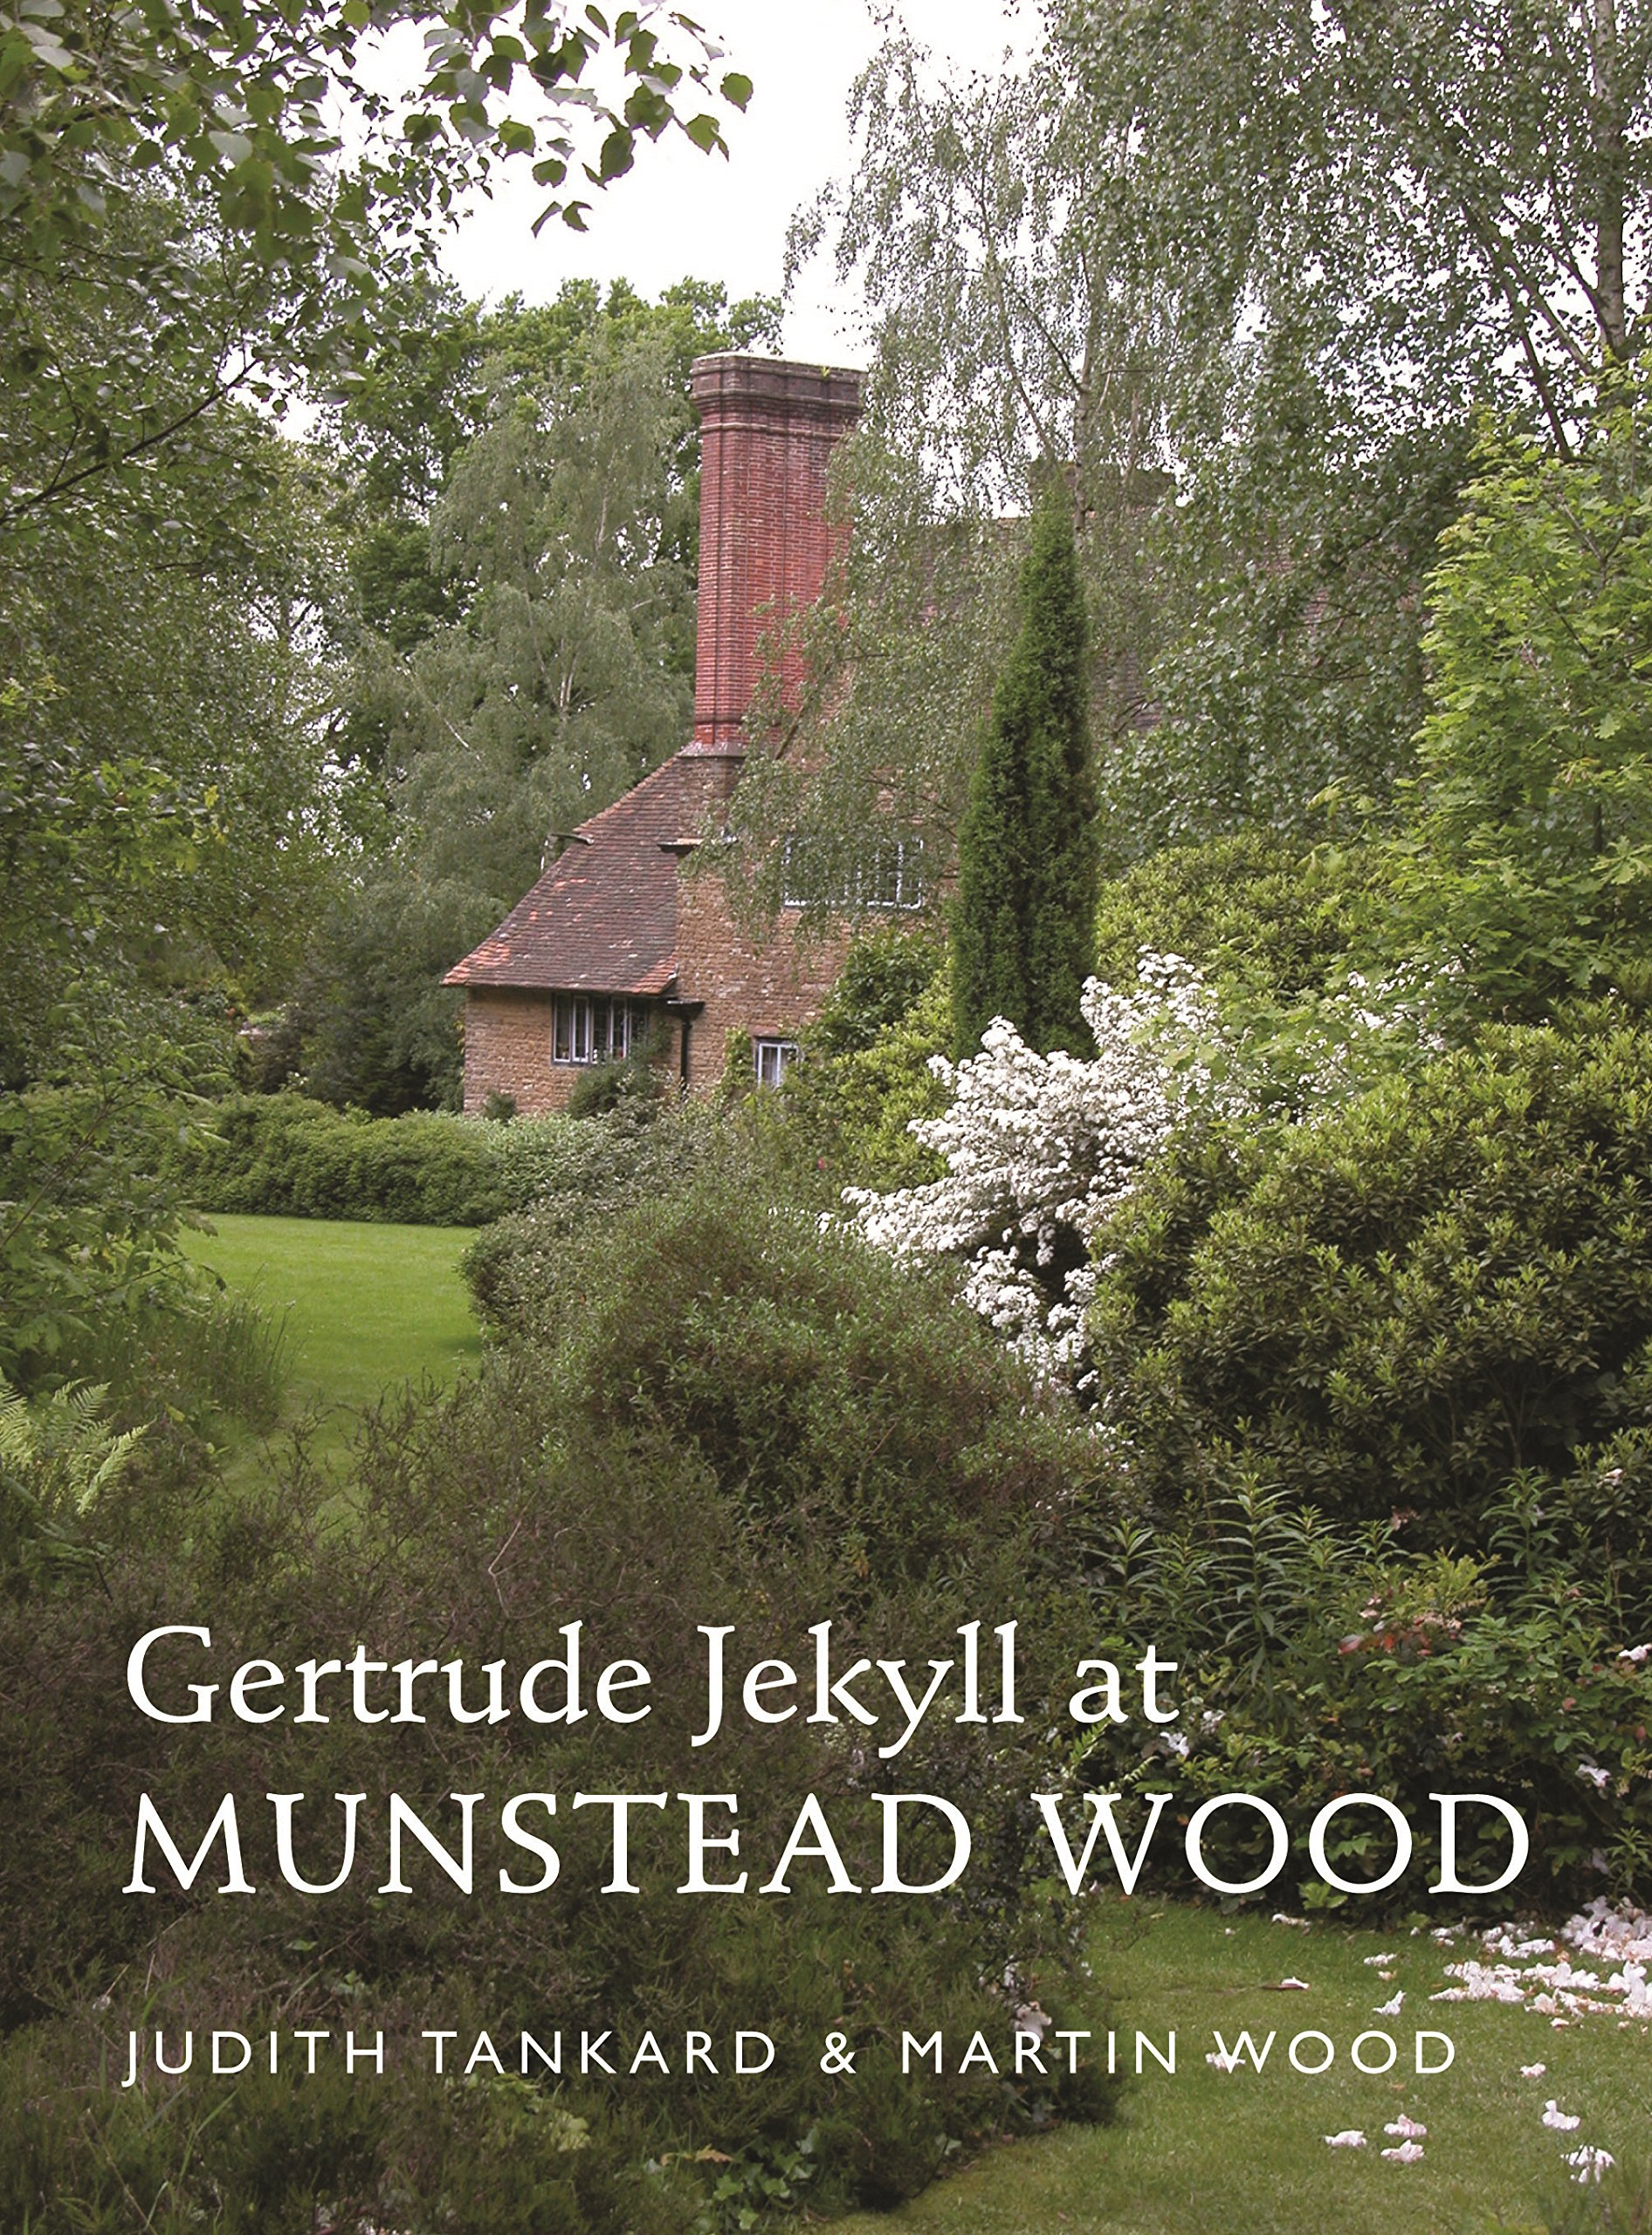 Gertrude Jekyll at Munstead Wood (A Pimpernel Garden Classic)